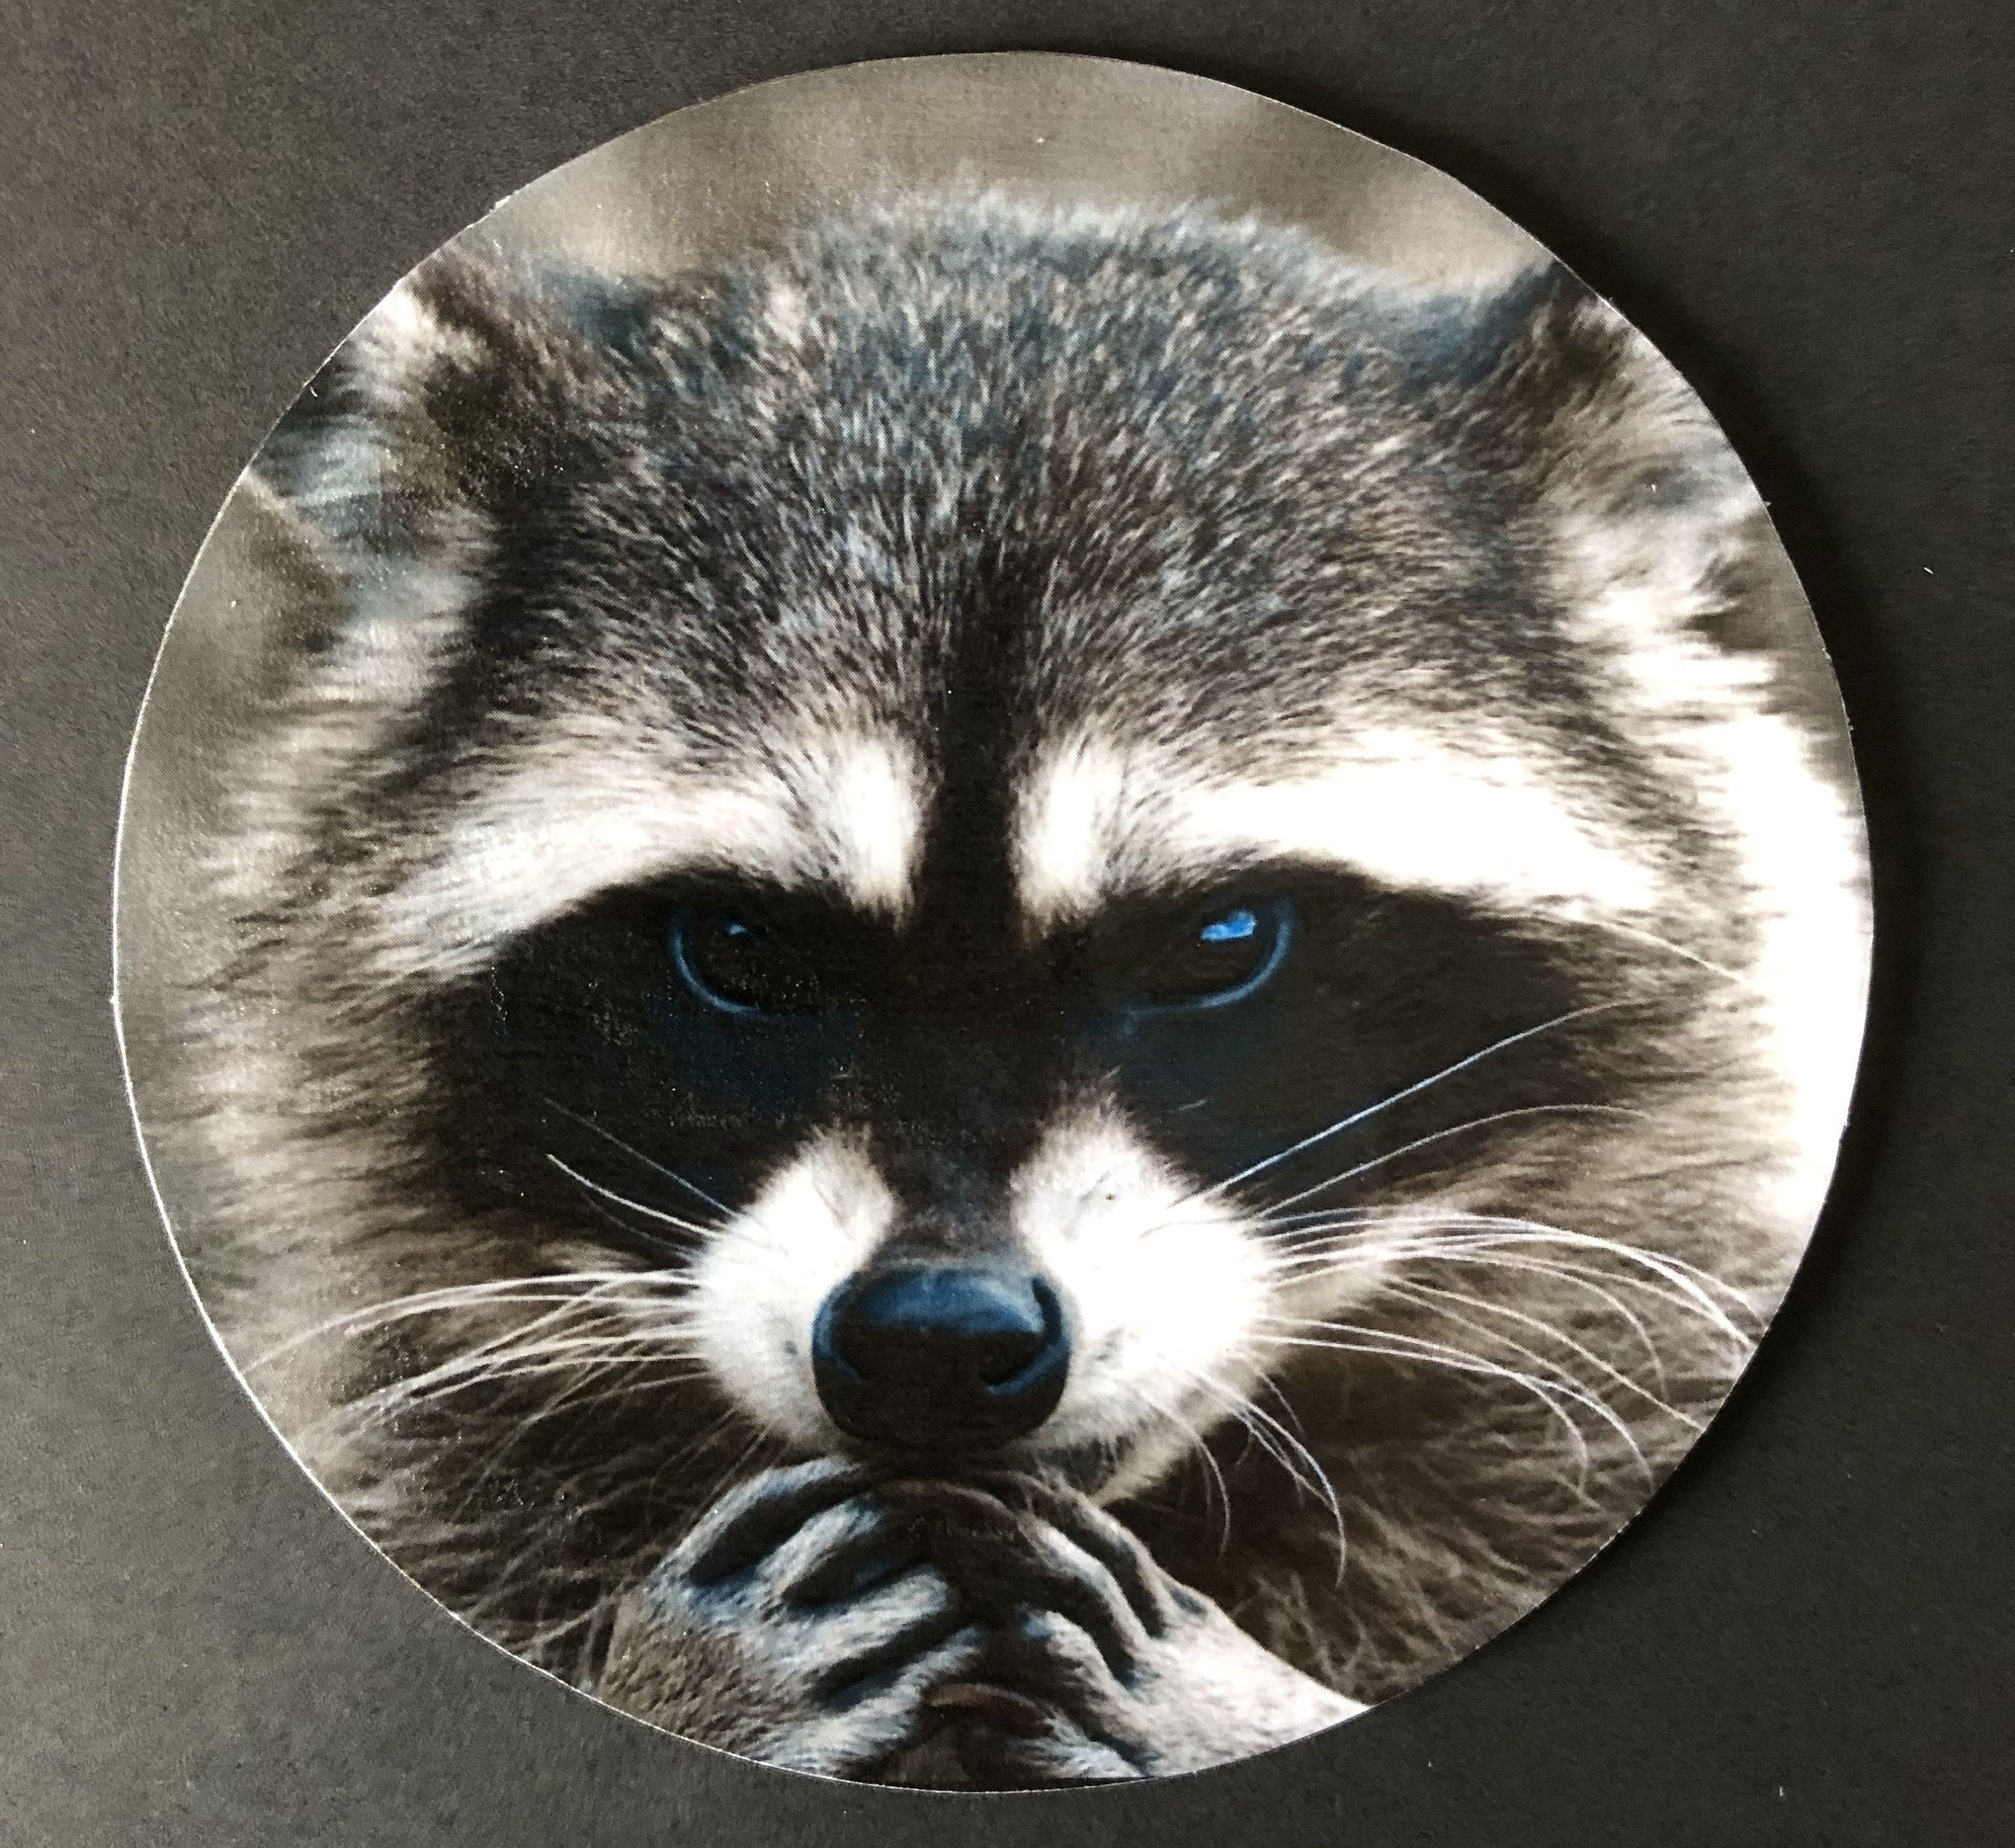 Raccoon - Recycled CD Art - Home Decor #recycledcd Raccoon - Recycled CD Art - Home Decor  #recycled #Decor #acrylic #upcyled #HandPainted #painting #paint #varnish #DotArt #RecycledCdArt #recycledcd Raccoon - Recycled CD Art - Home Decor #recycledcd Raccoon - Recycled CD Art - Home Decor  #recycled #Decor #acrylic #upcyled #HandPainted #painting #paint #varnish #DotArt #RecycledCdArt #recycledcd Raccoon - Recycled CD Art - Home Decor #recycledcd Raccoon - Recycled CD Art - Home Decor  #recycled #recycledcd